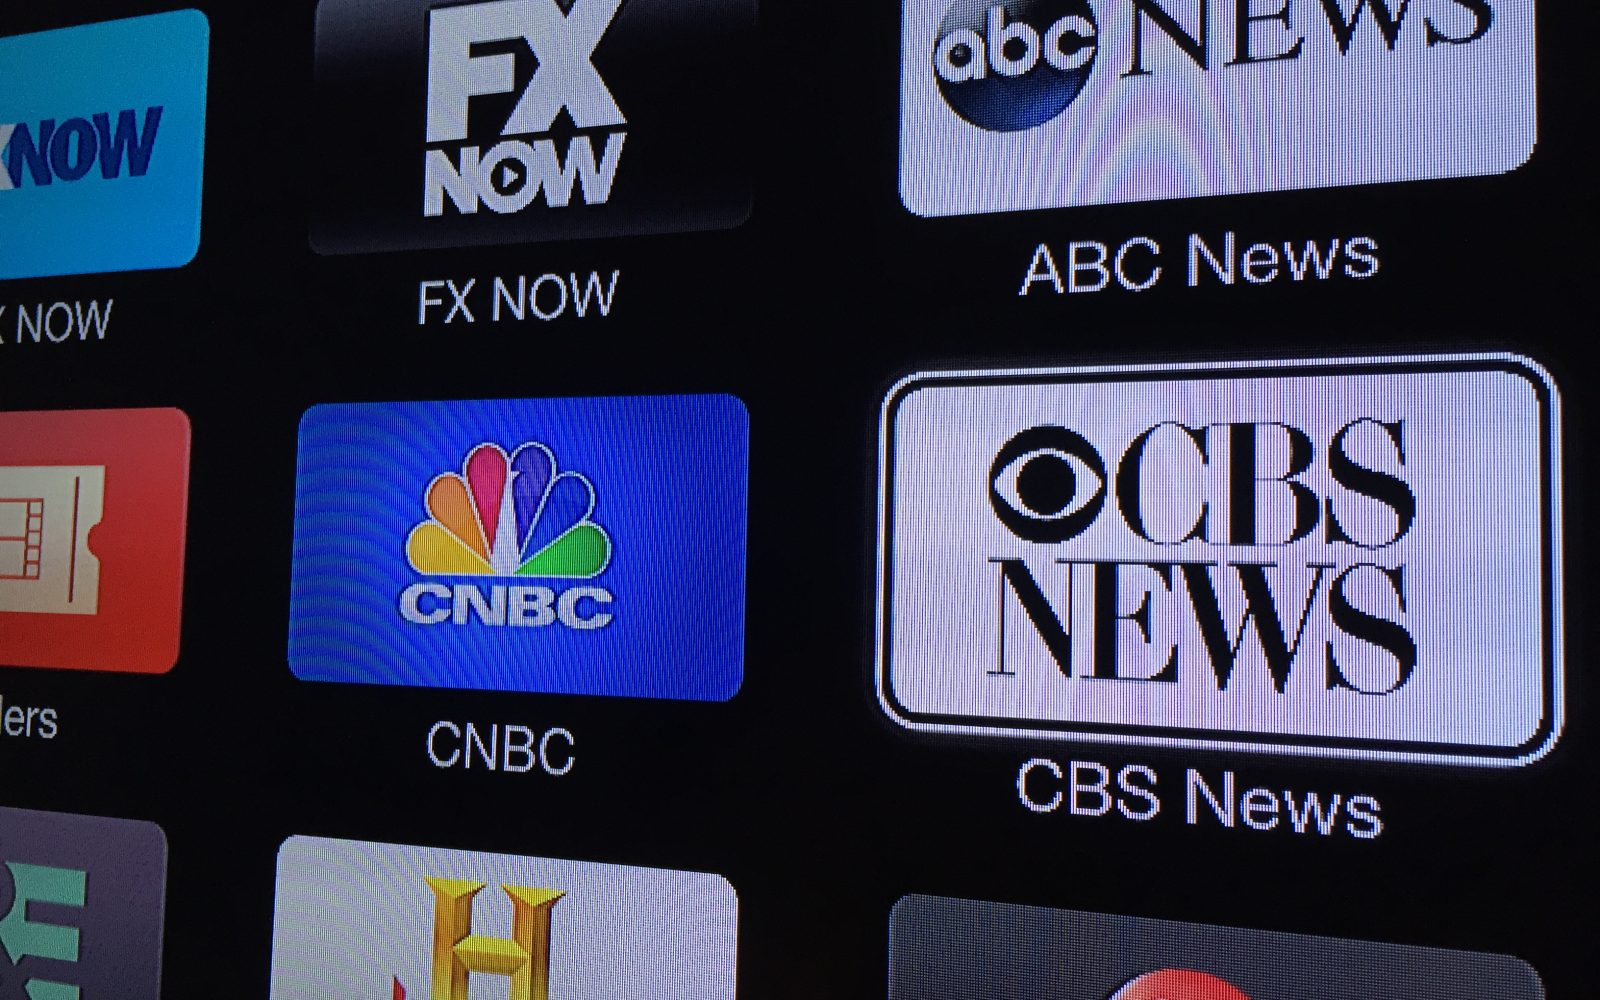 Apple TV updated with CBS News channel including free CBSN streaming